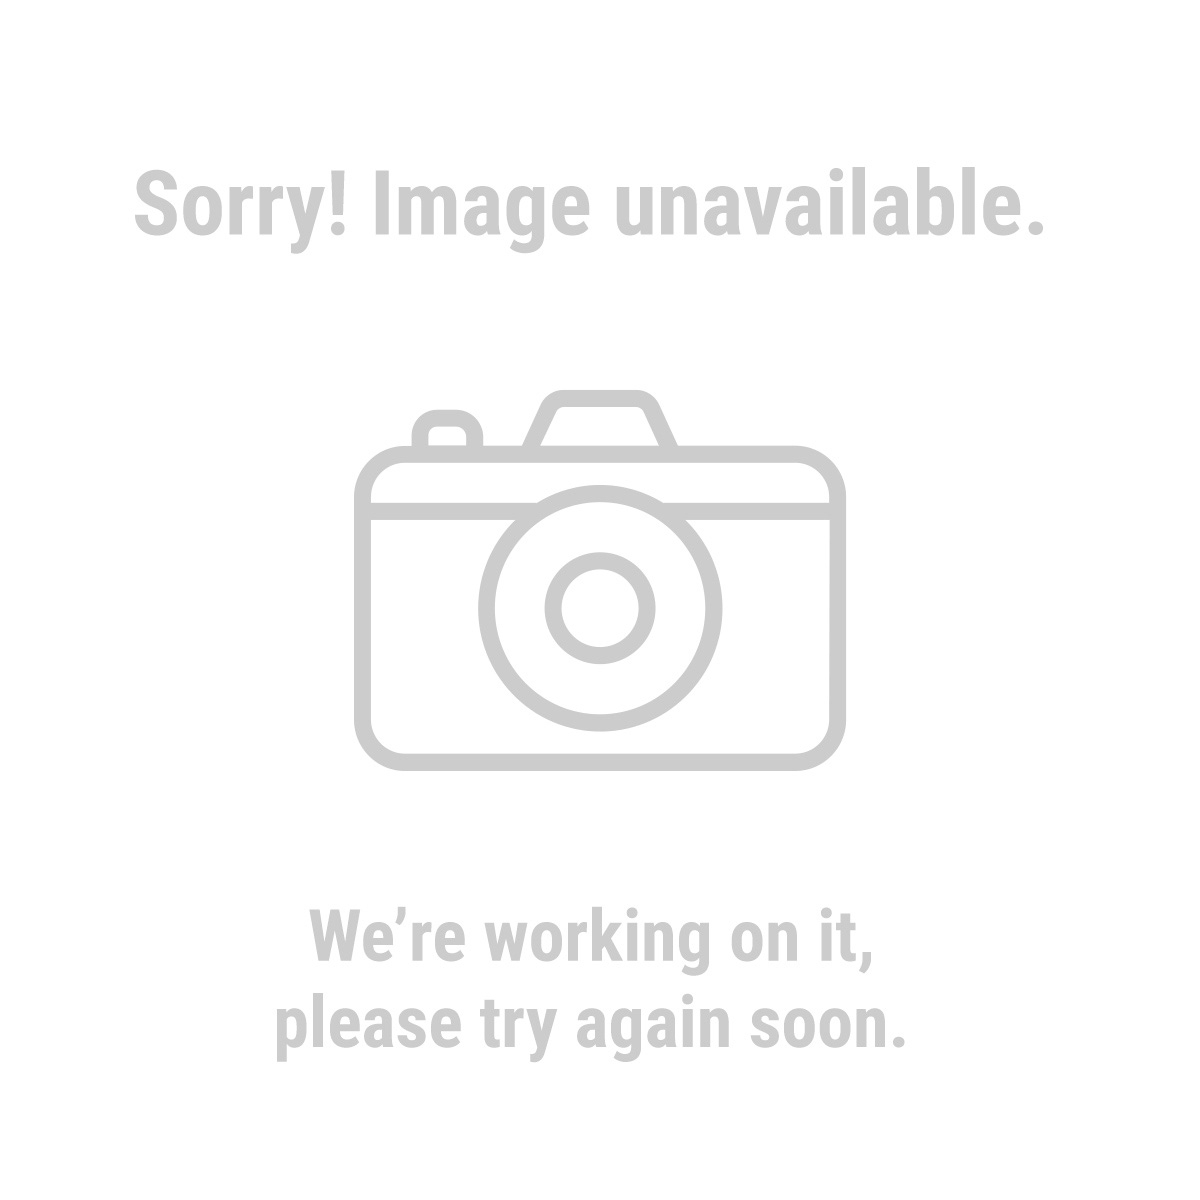 Warrior® 61448 4-1/2 in. 24 Grit Metal Grinding Wheel